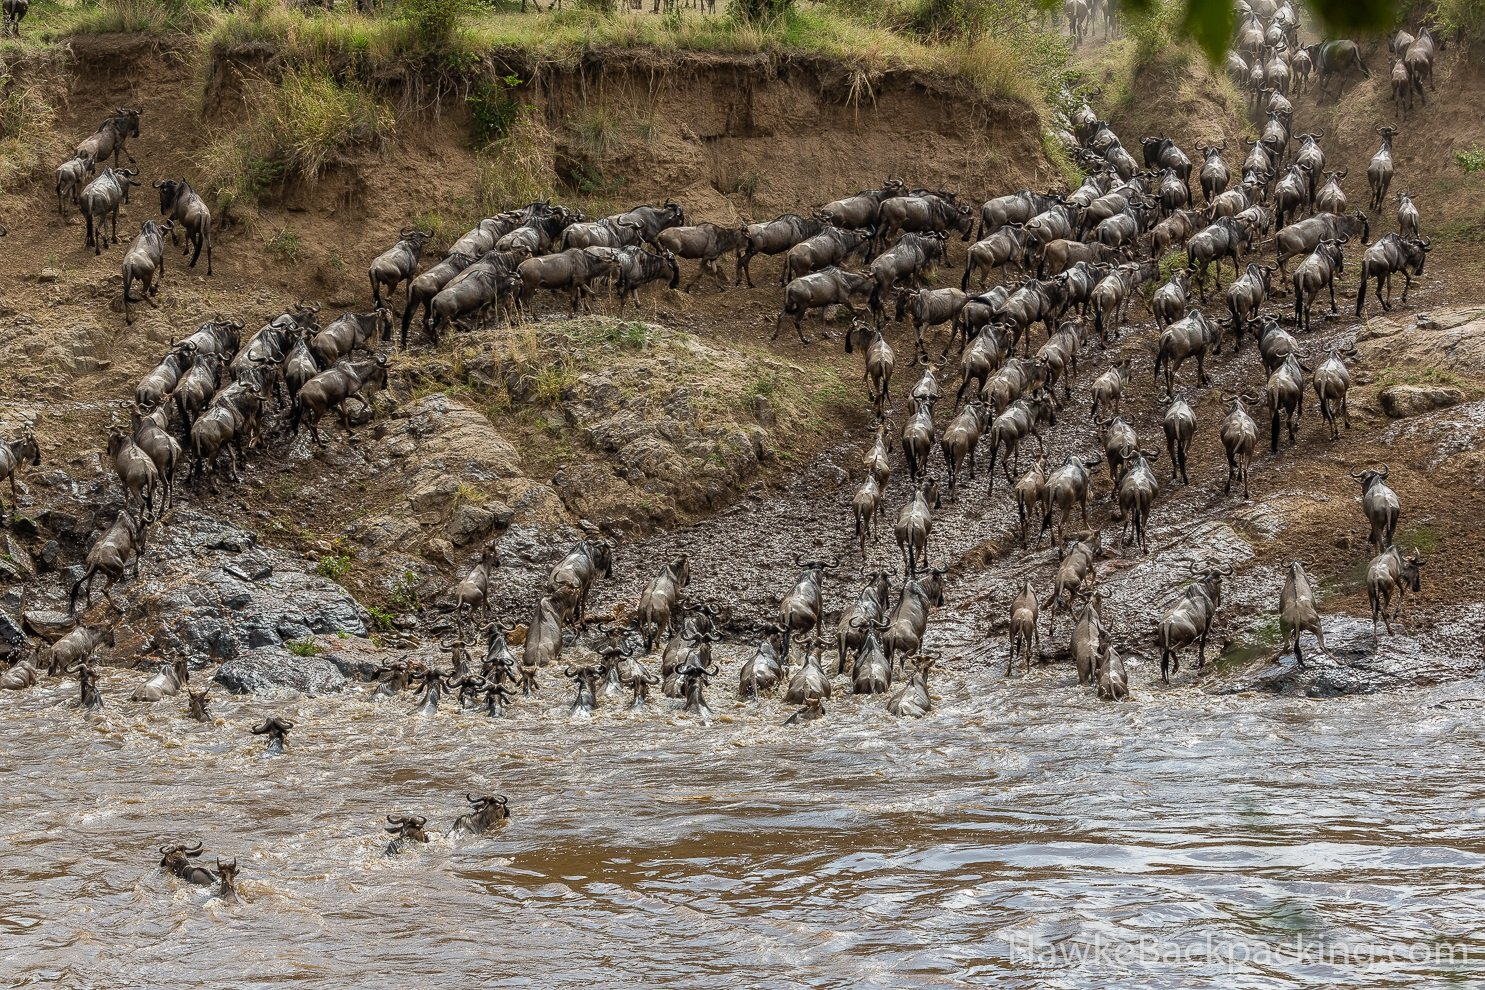 River crossing of the great migration in the Masai Mara, Crooked Compass